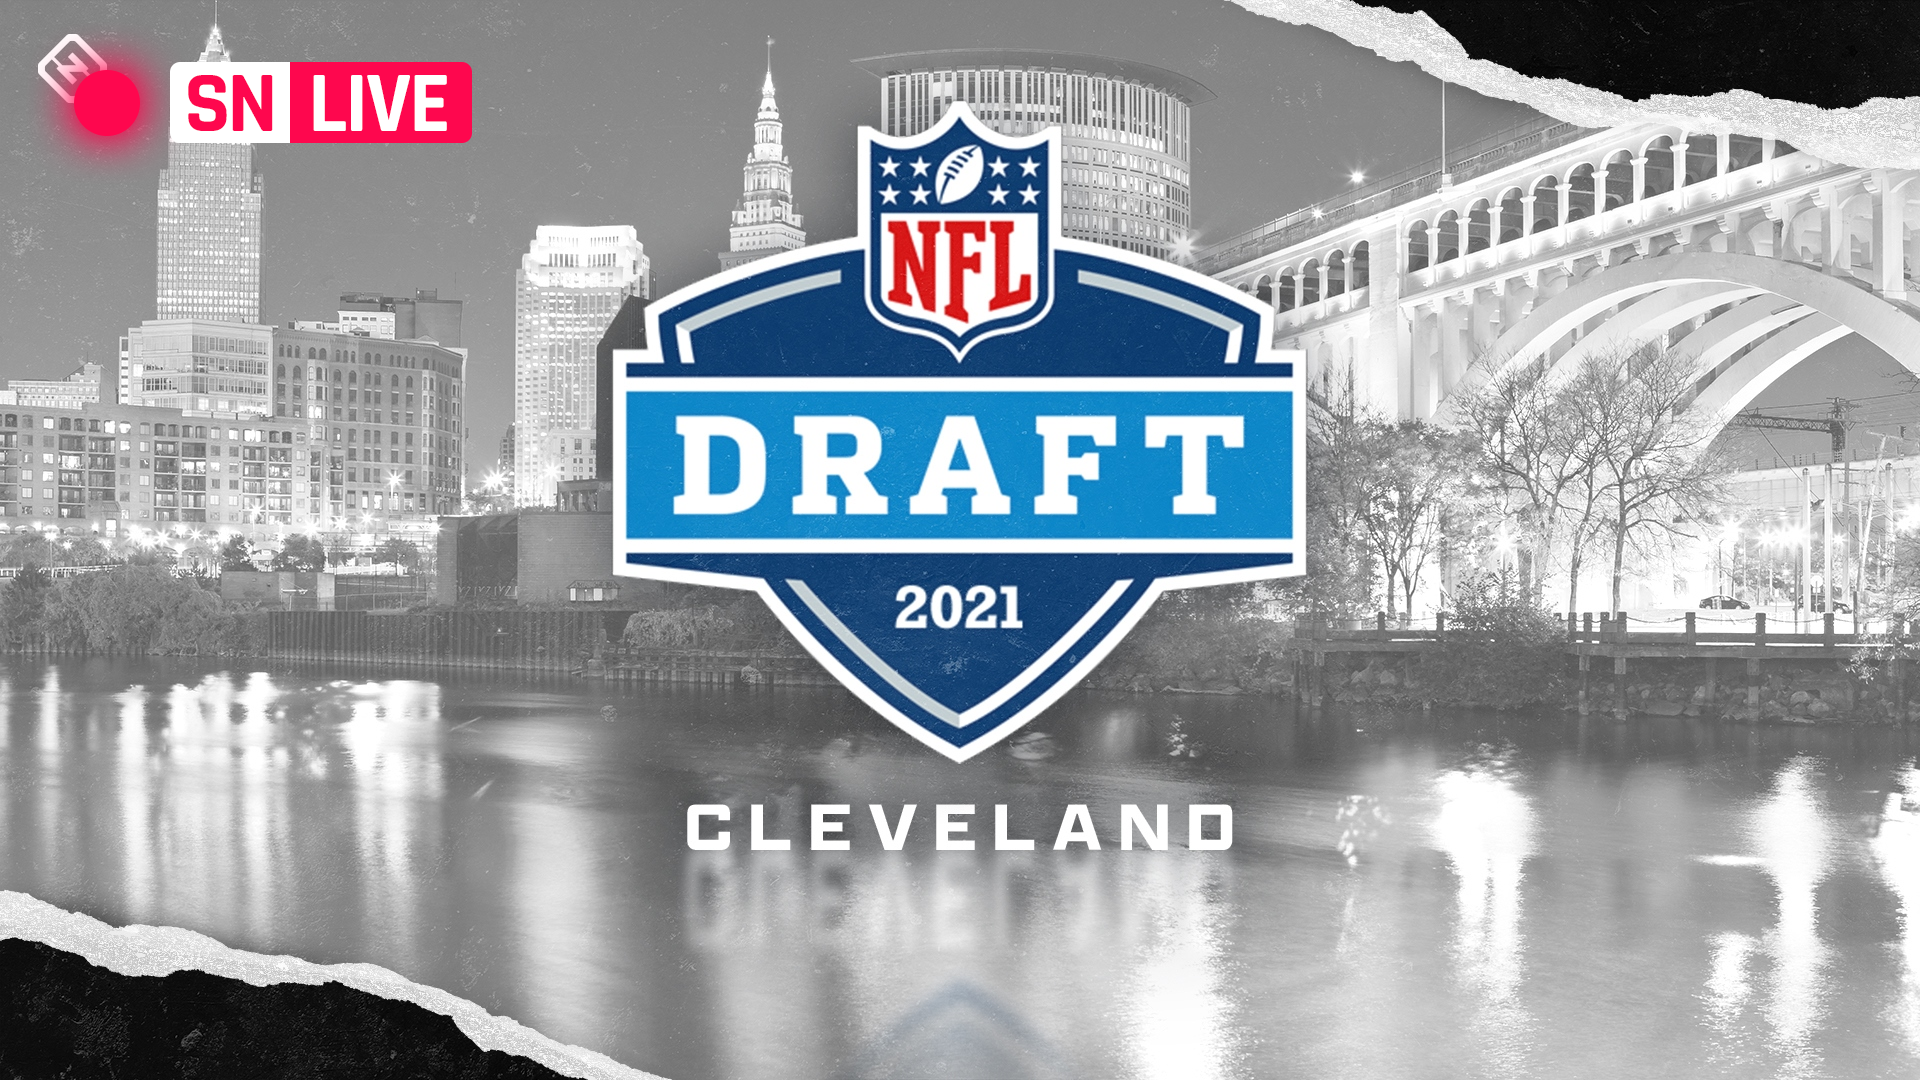 2021 NFL draft pick: live results, full list of rounds 1-7 selections